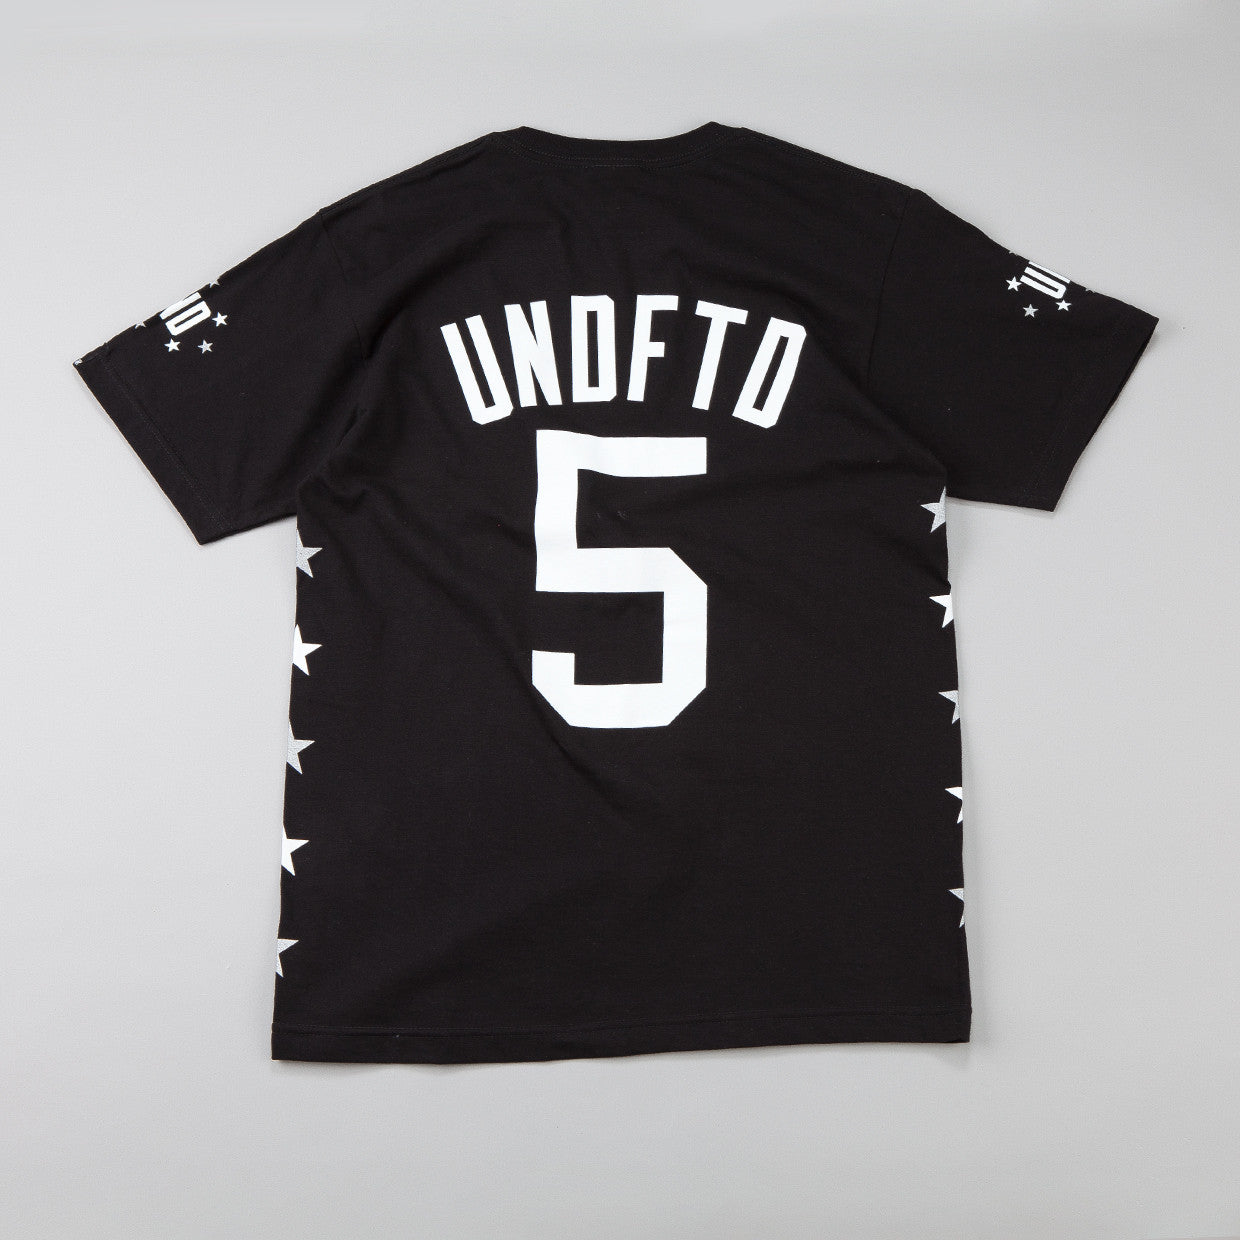 Undefeated Global T-shirt Black